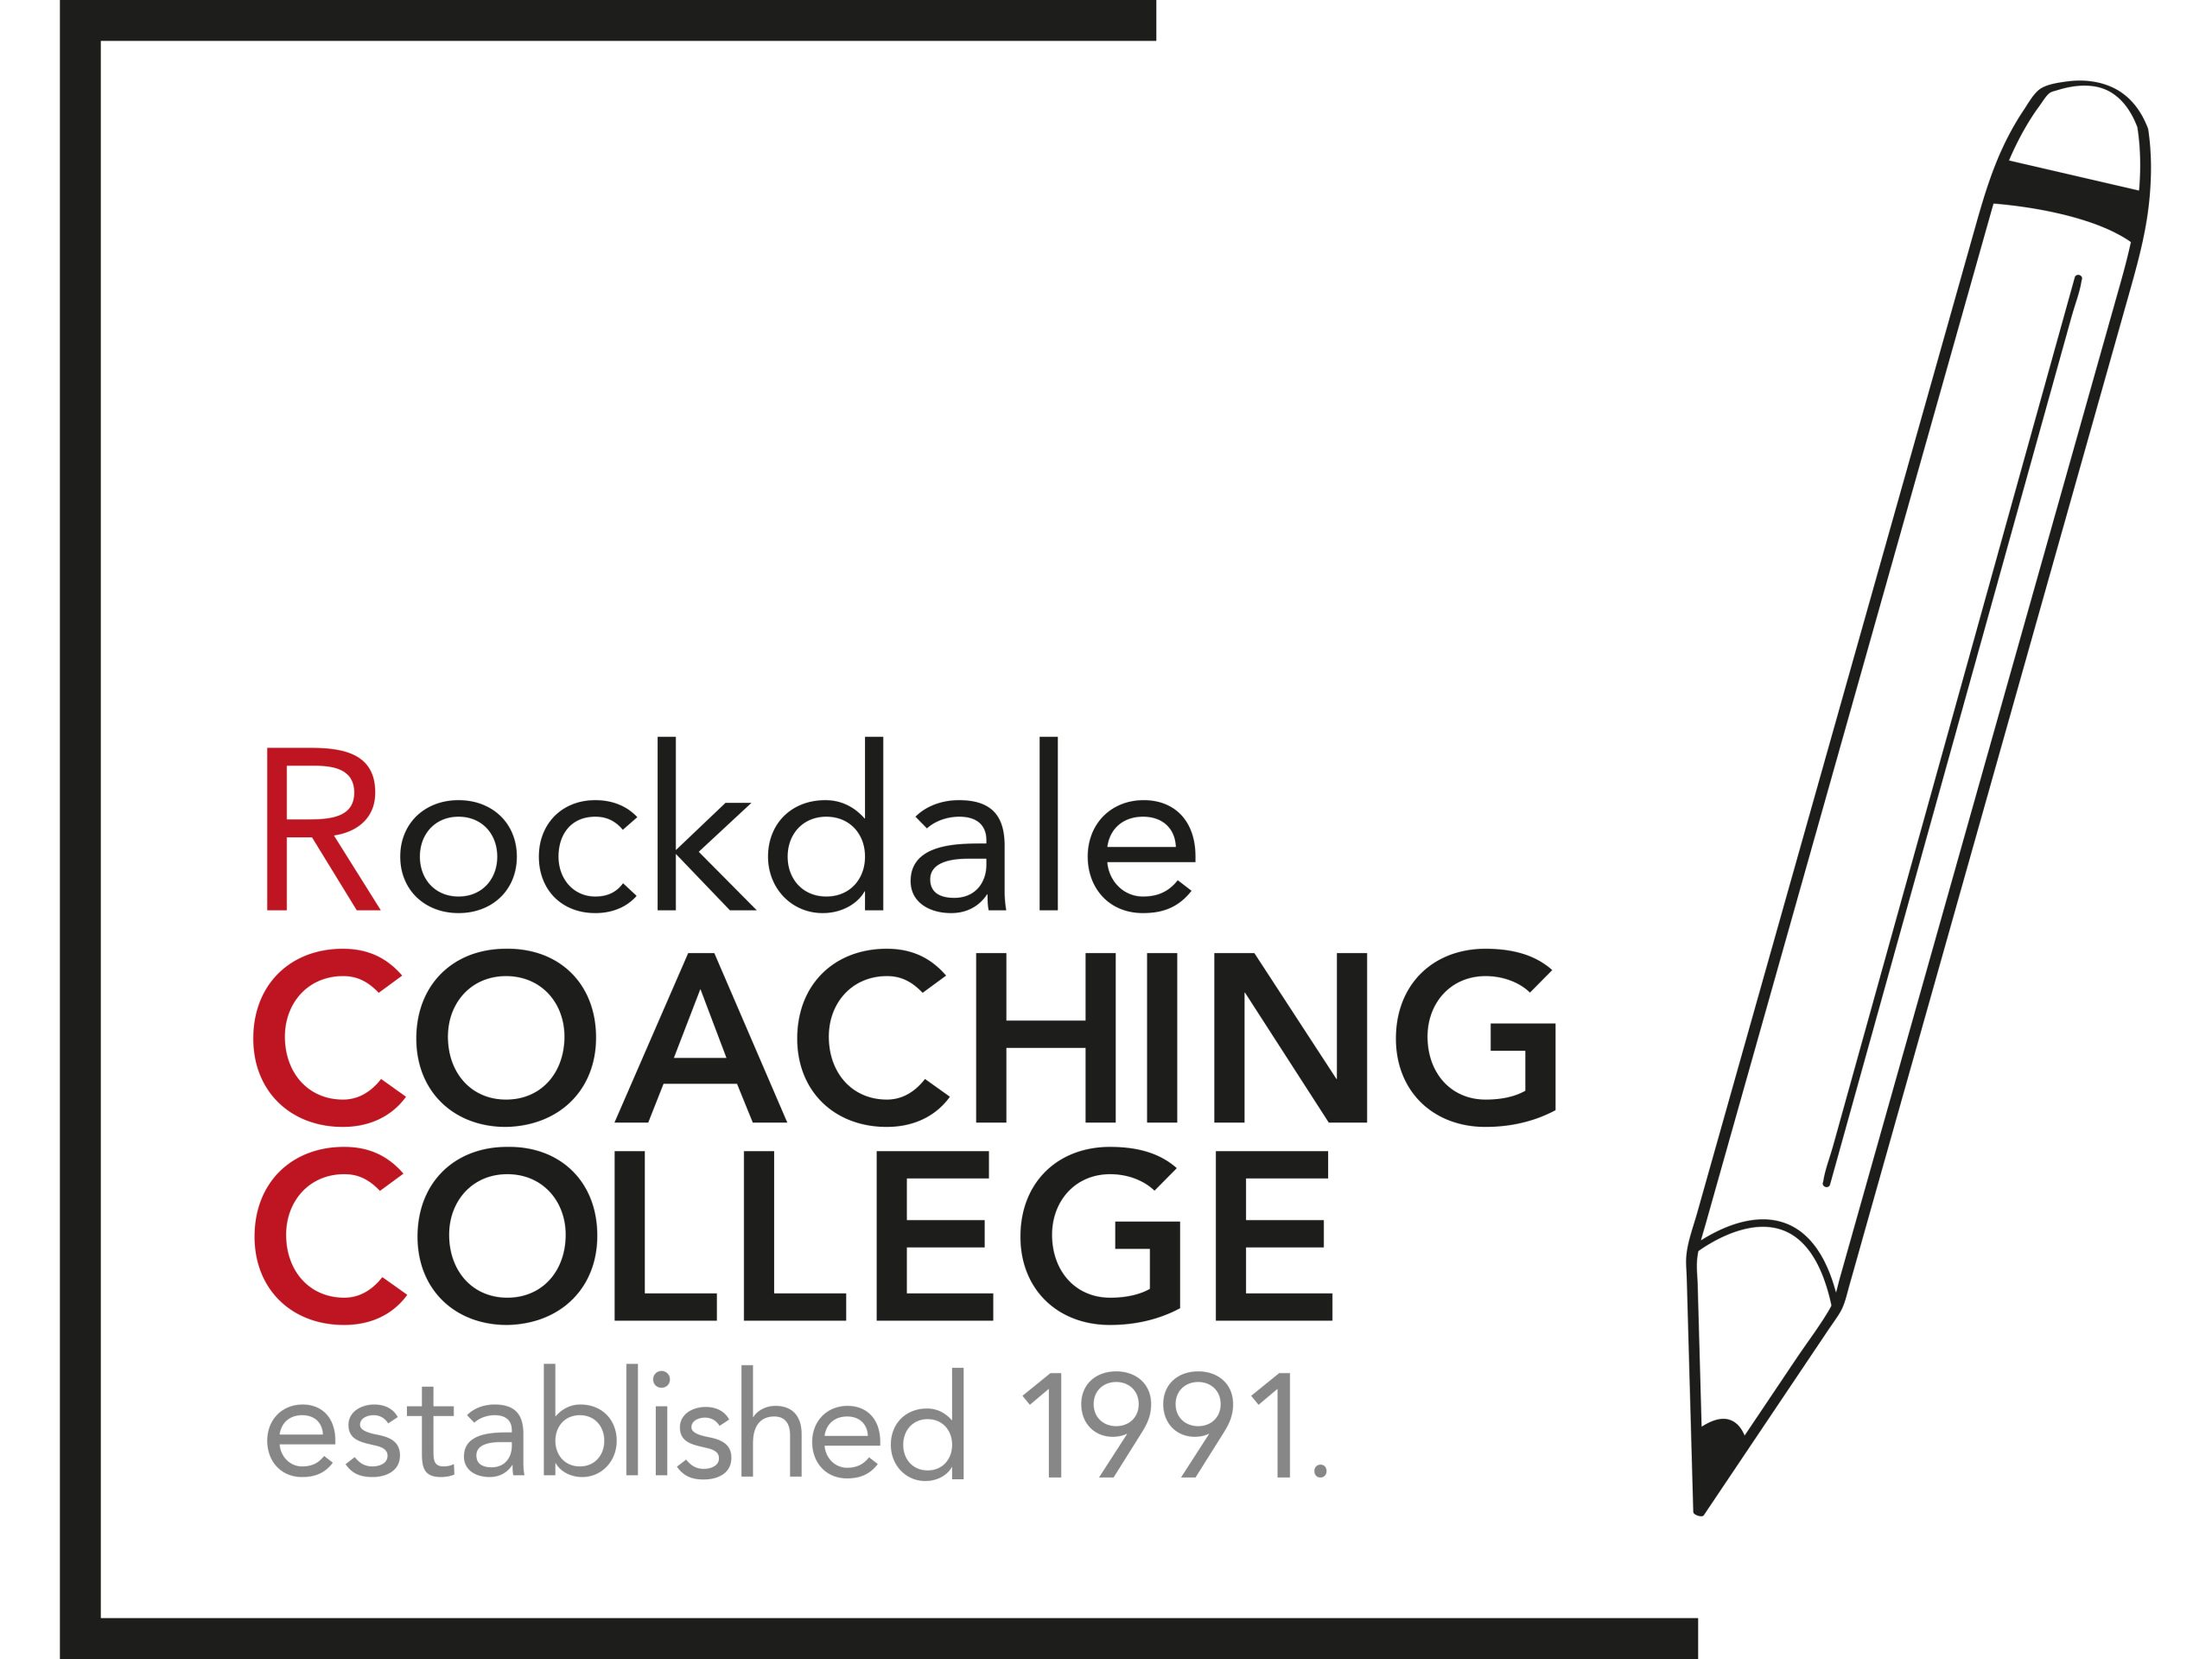 Rockdale Coaching College